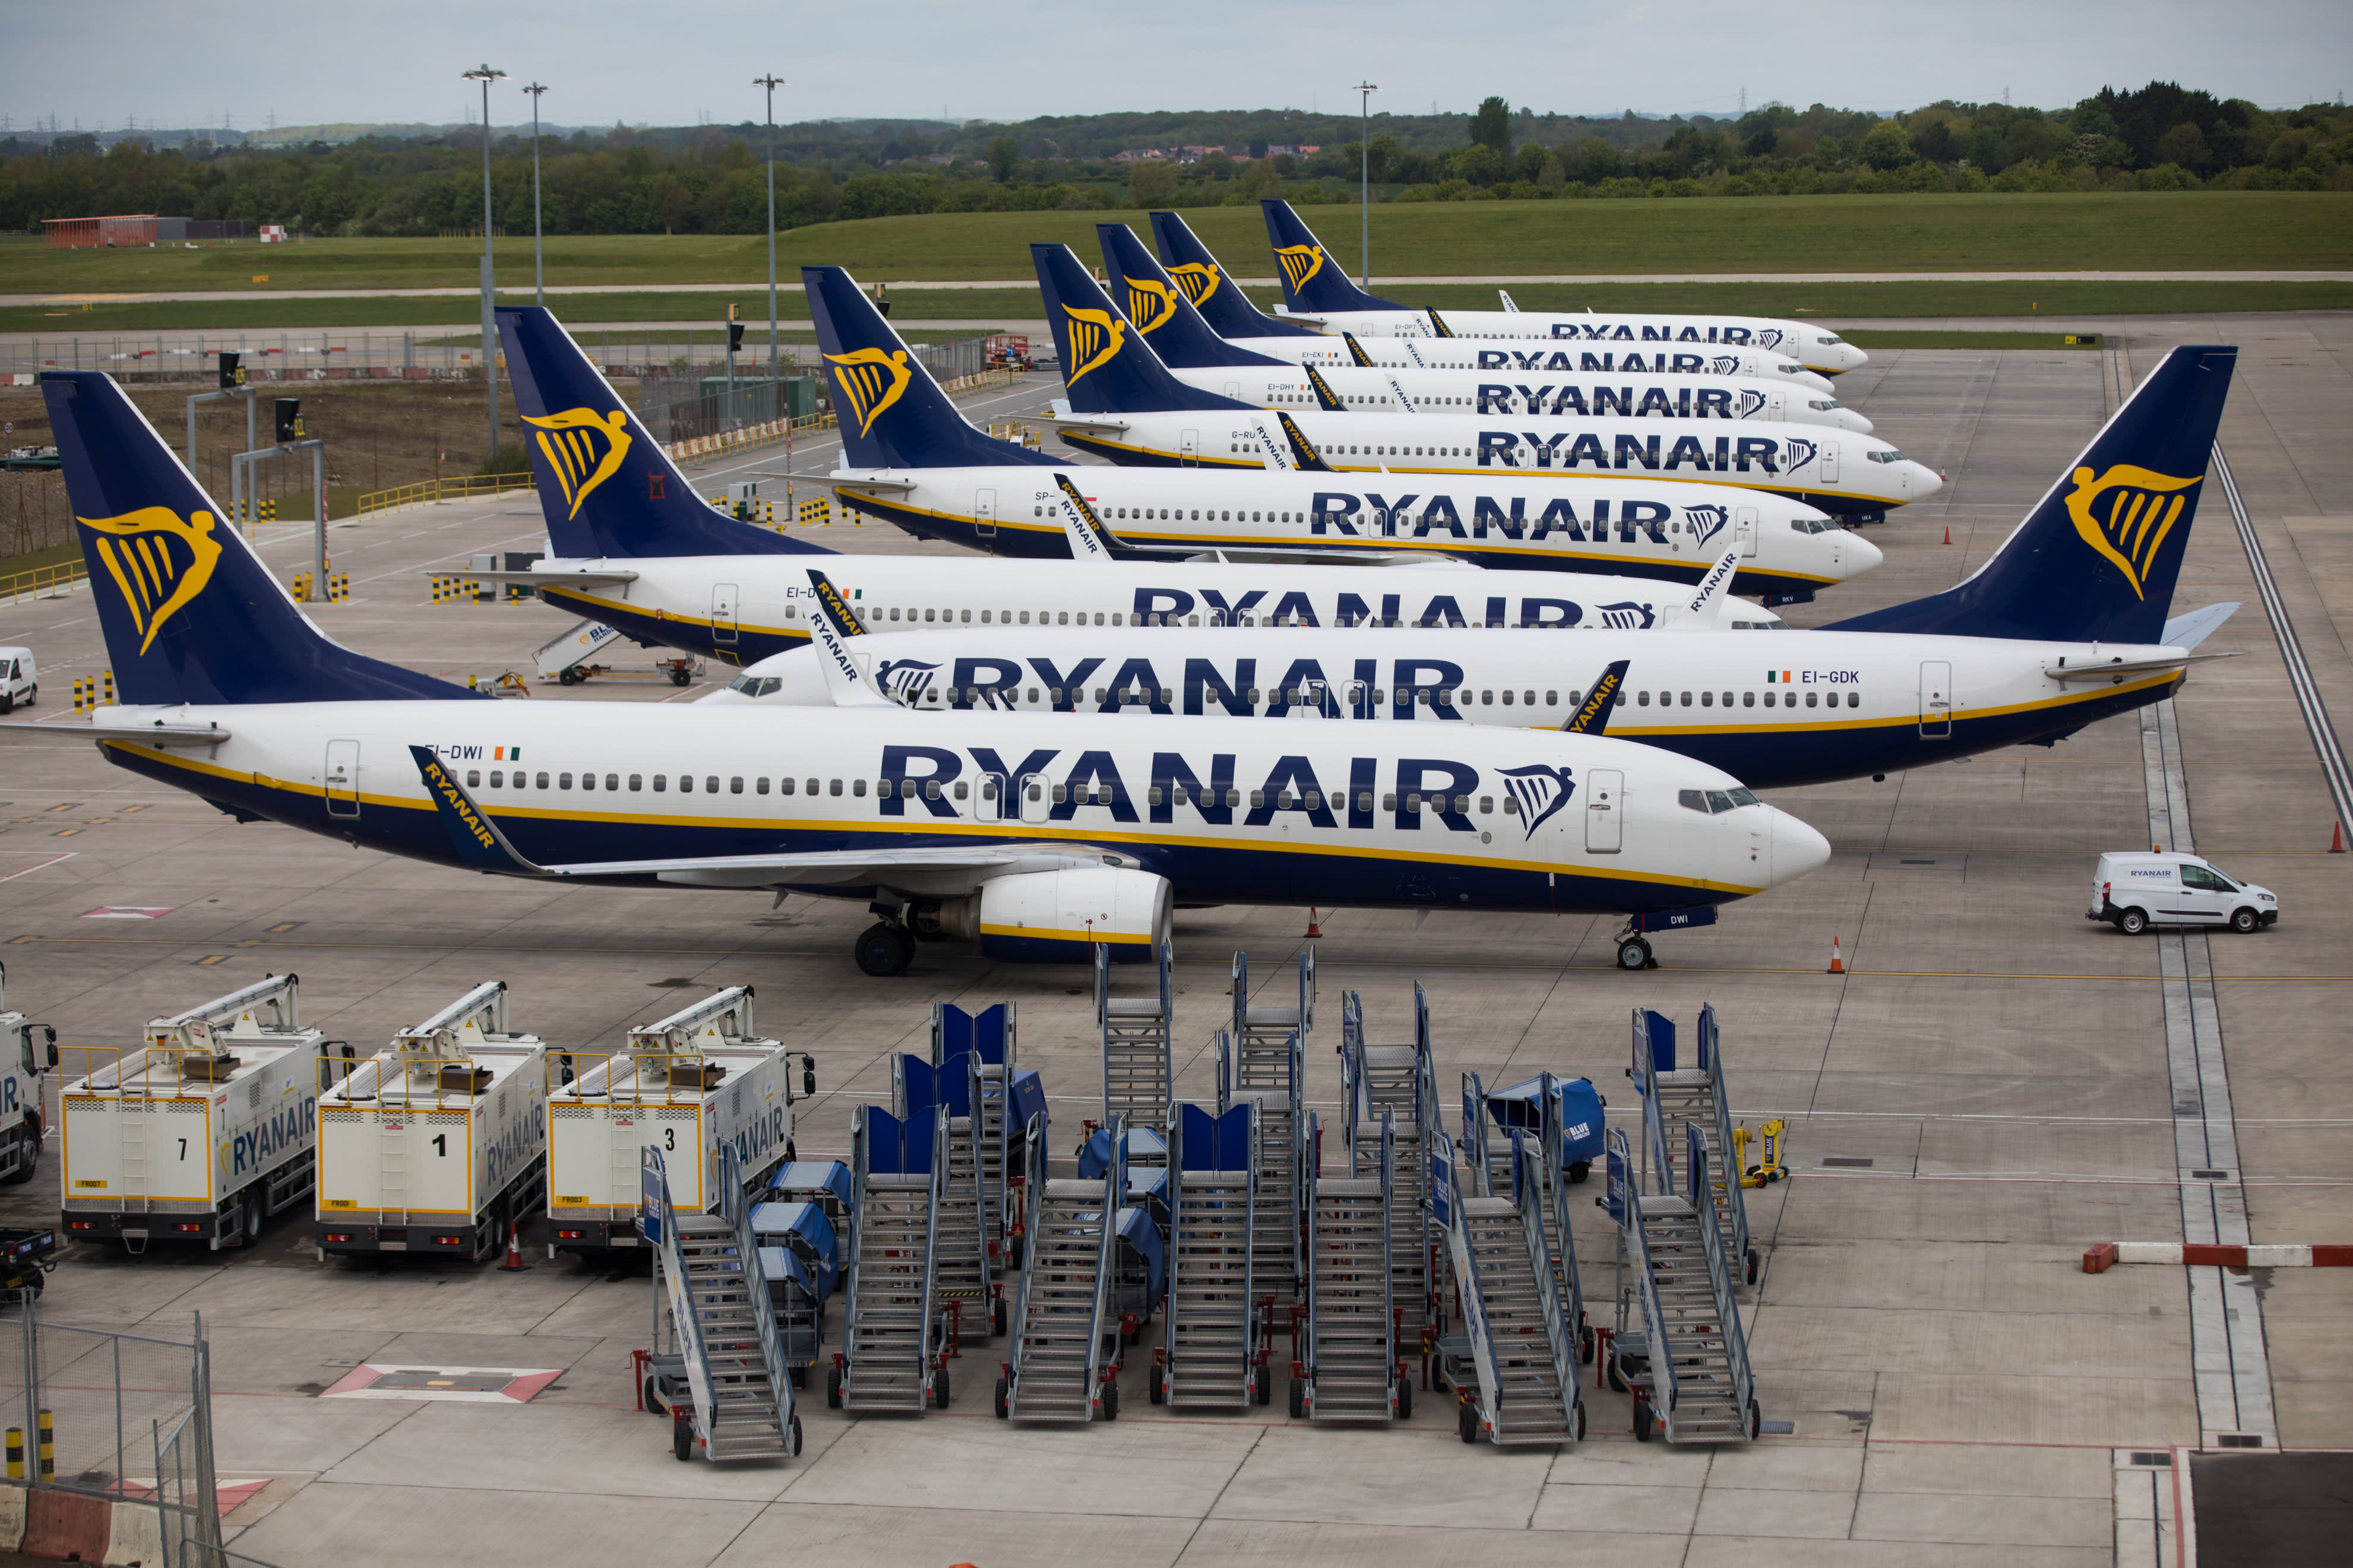 Ryanair CEO Michael O'Leary blasts government lockdowns as traffic falls 80%